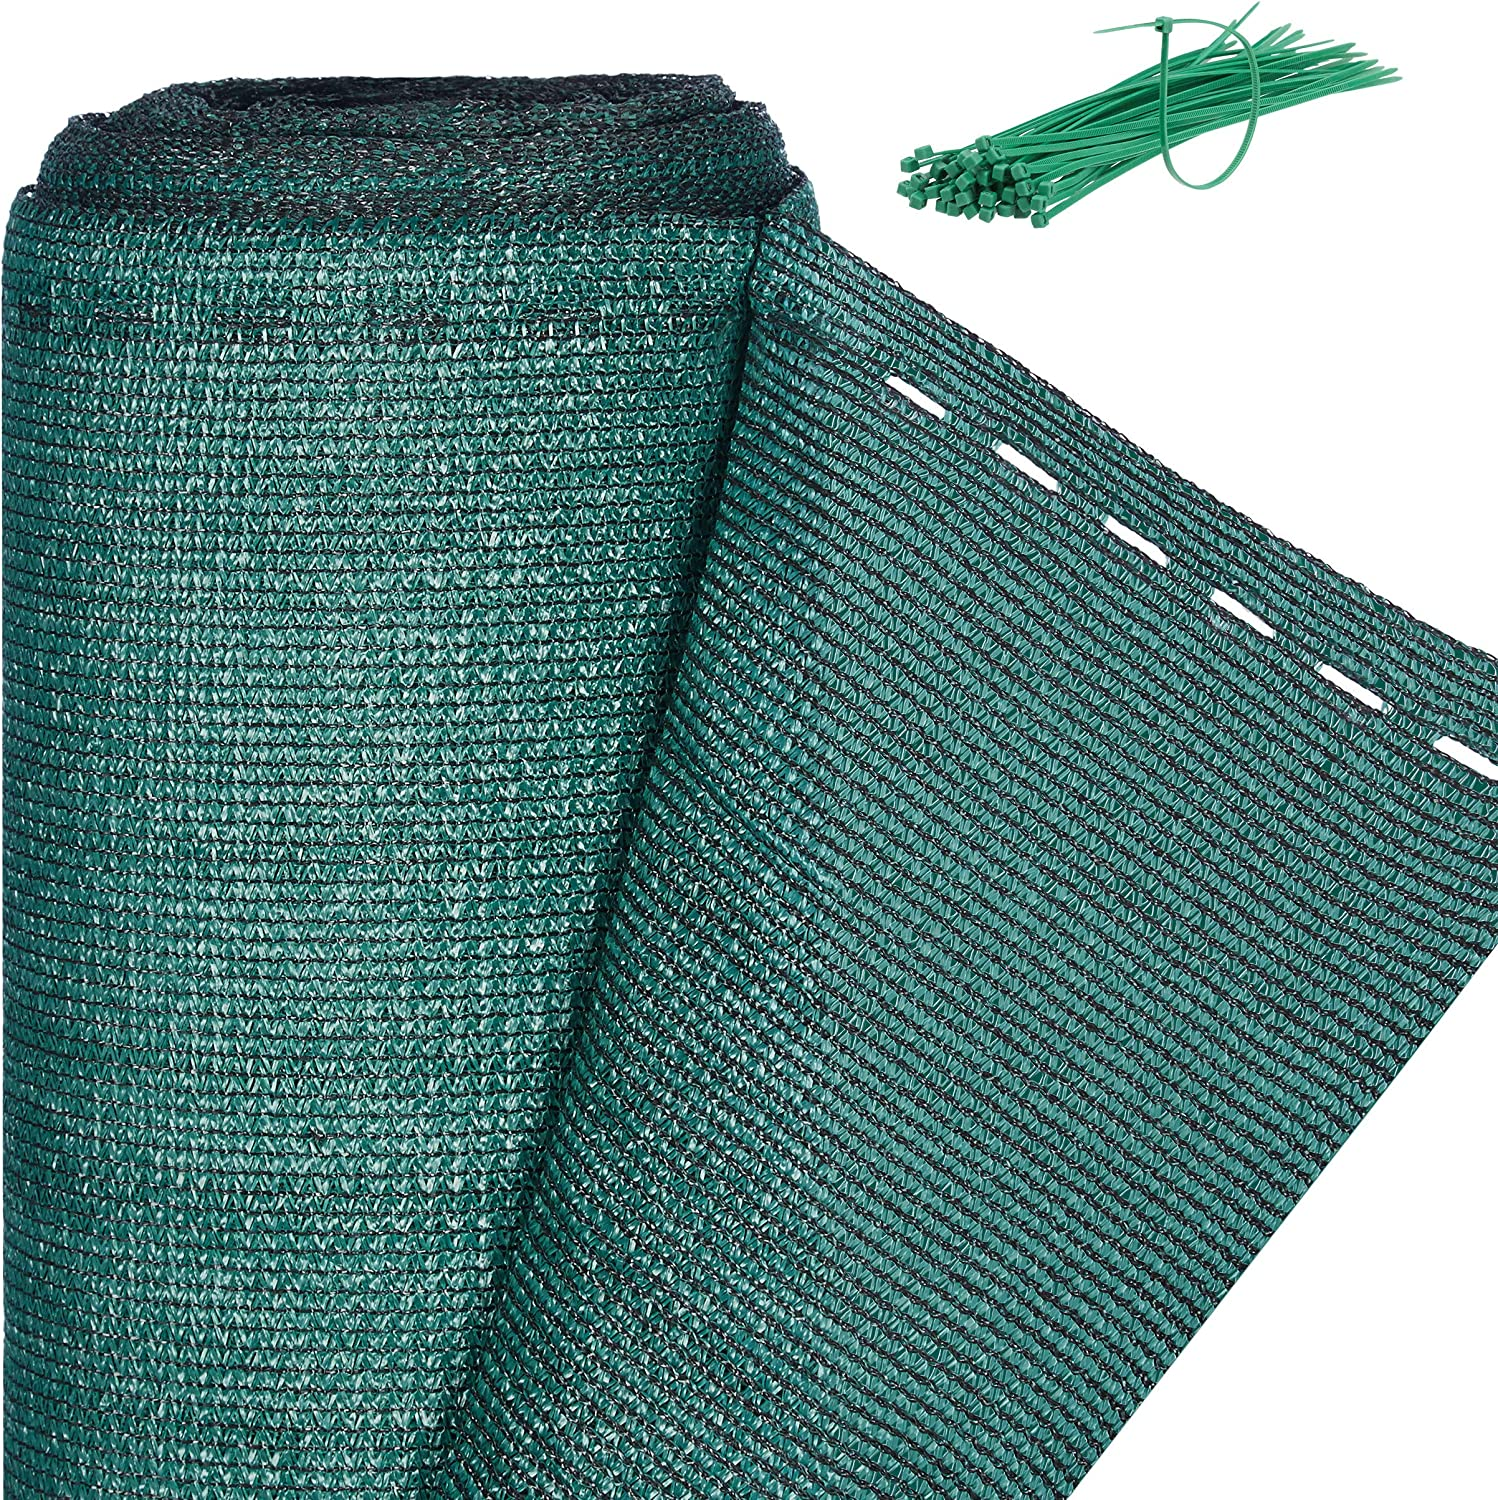 Green Fence 1,5 x 20 Meter 1.5 x 20 m UV-resistant HDPE Net Relaxdays Privacy Shield For Fences /& Railing Weatherproof